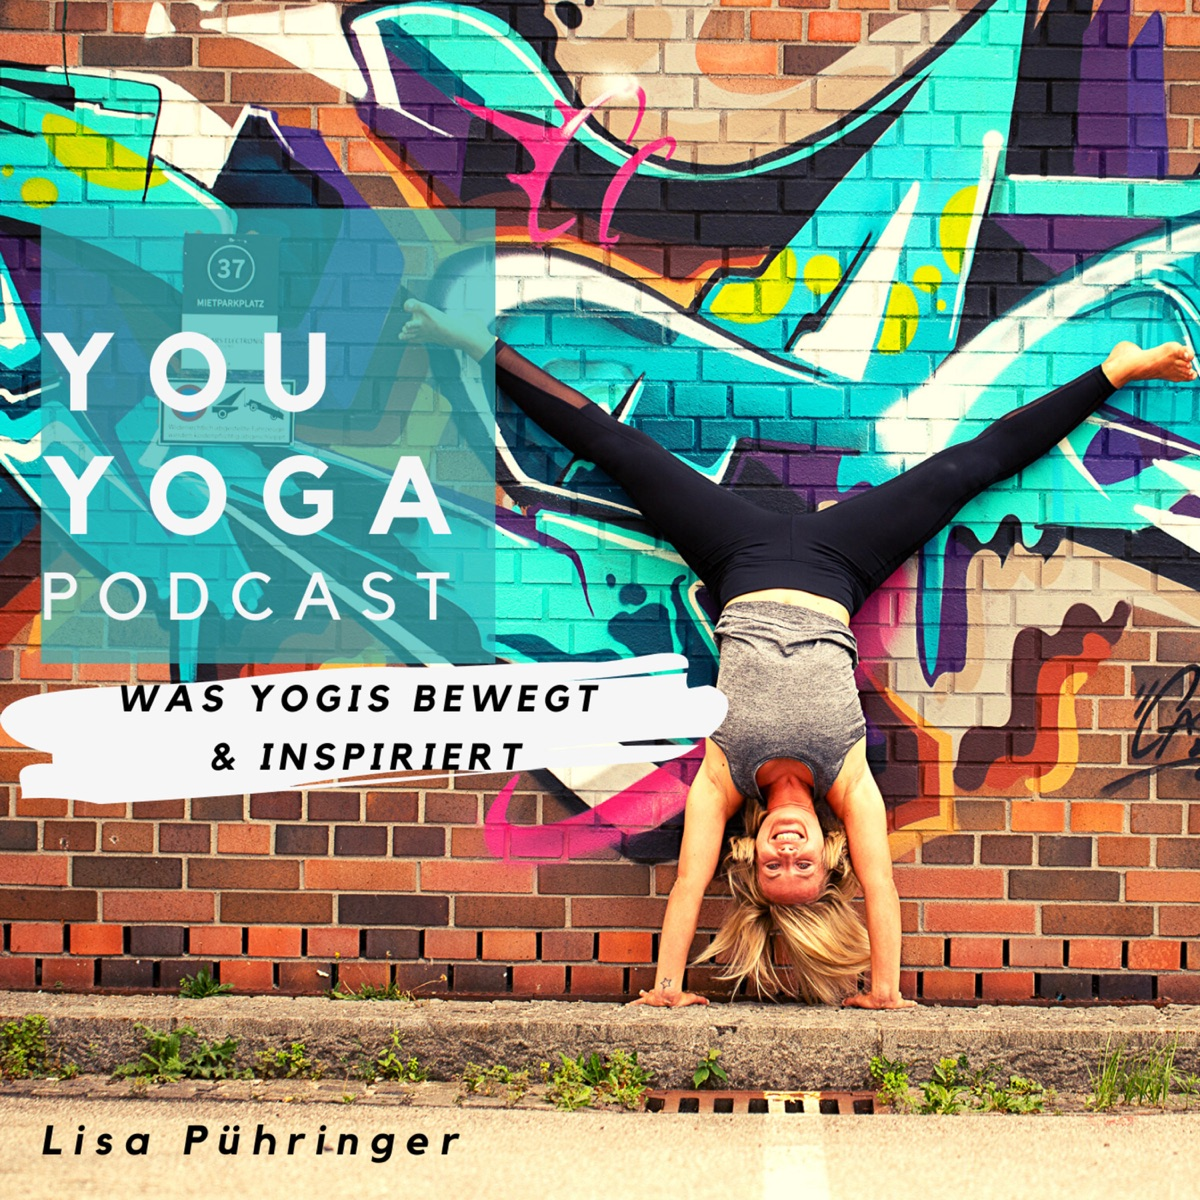 You Yoga Podcast